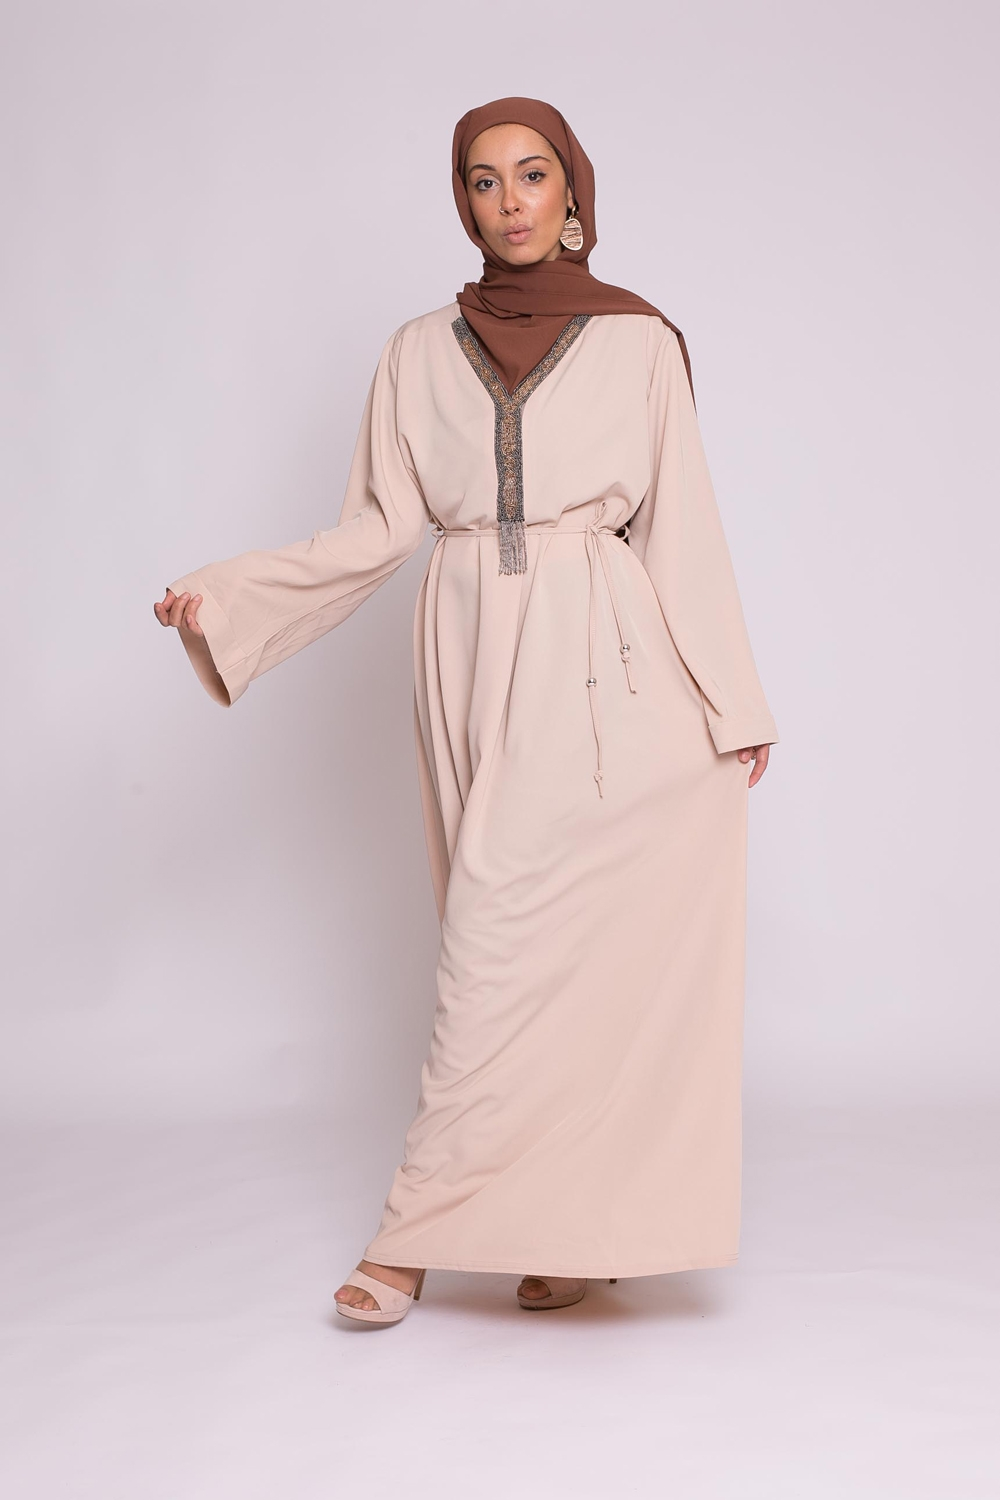 Robe pearly nude